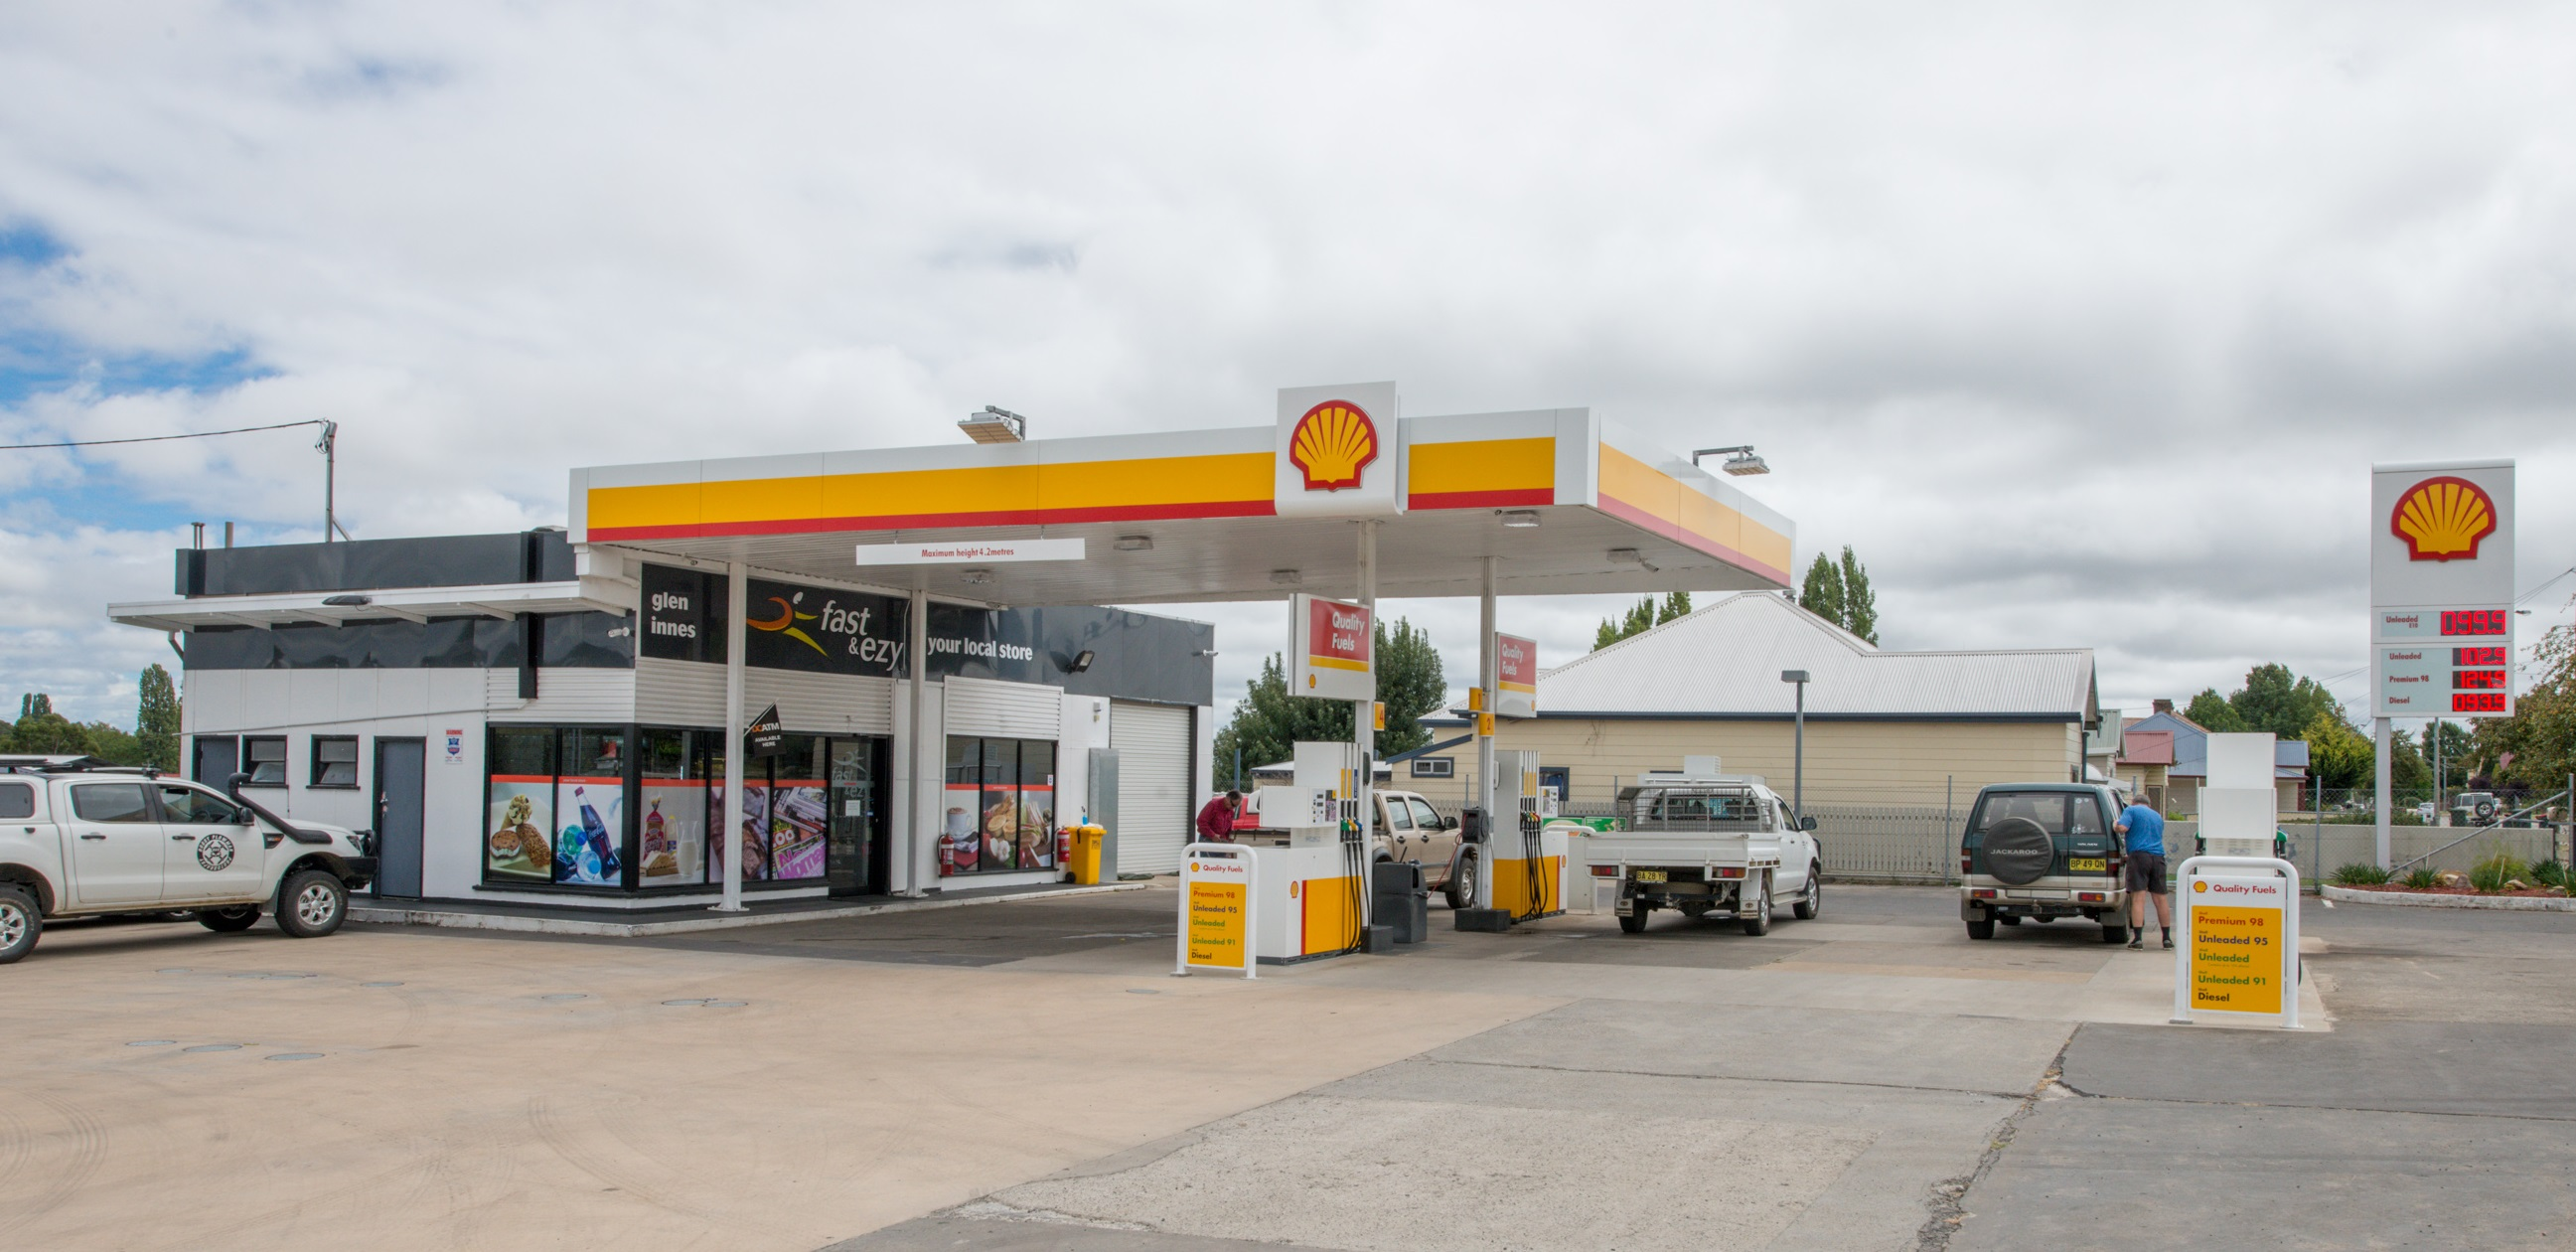 Shell Branded Highway Service Station